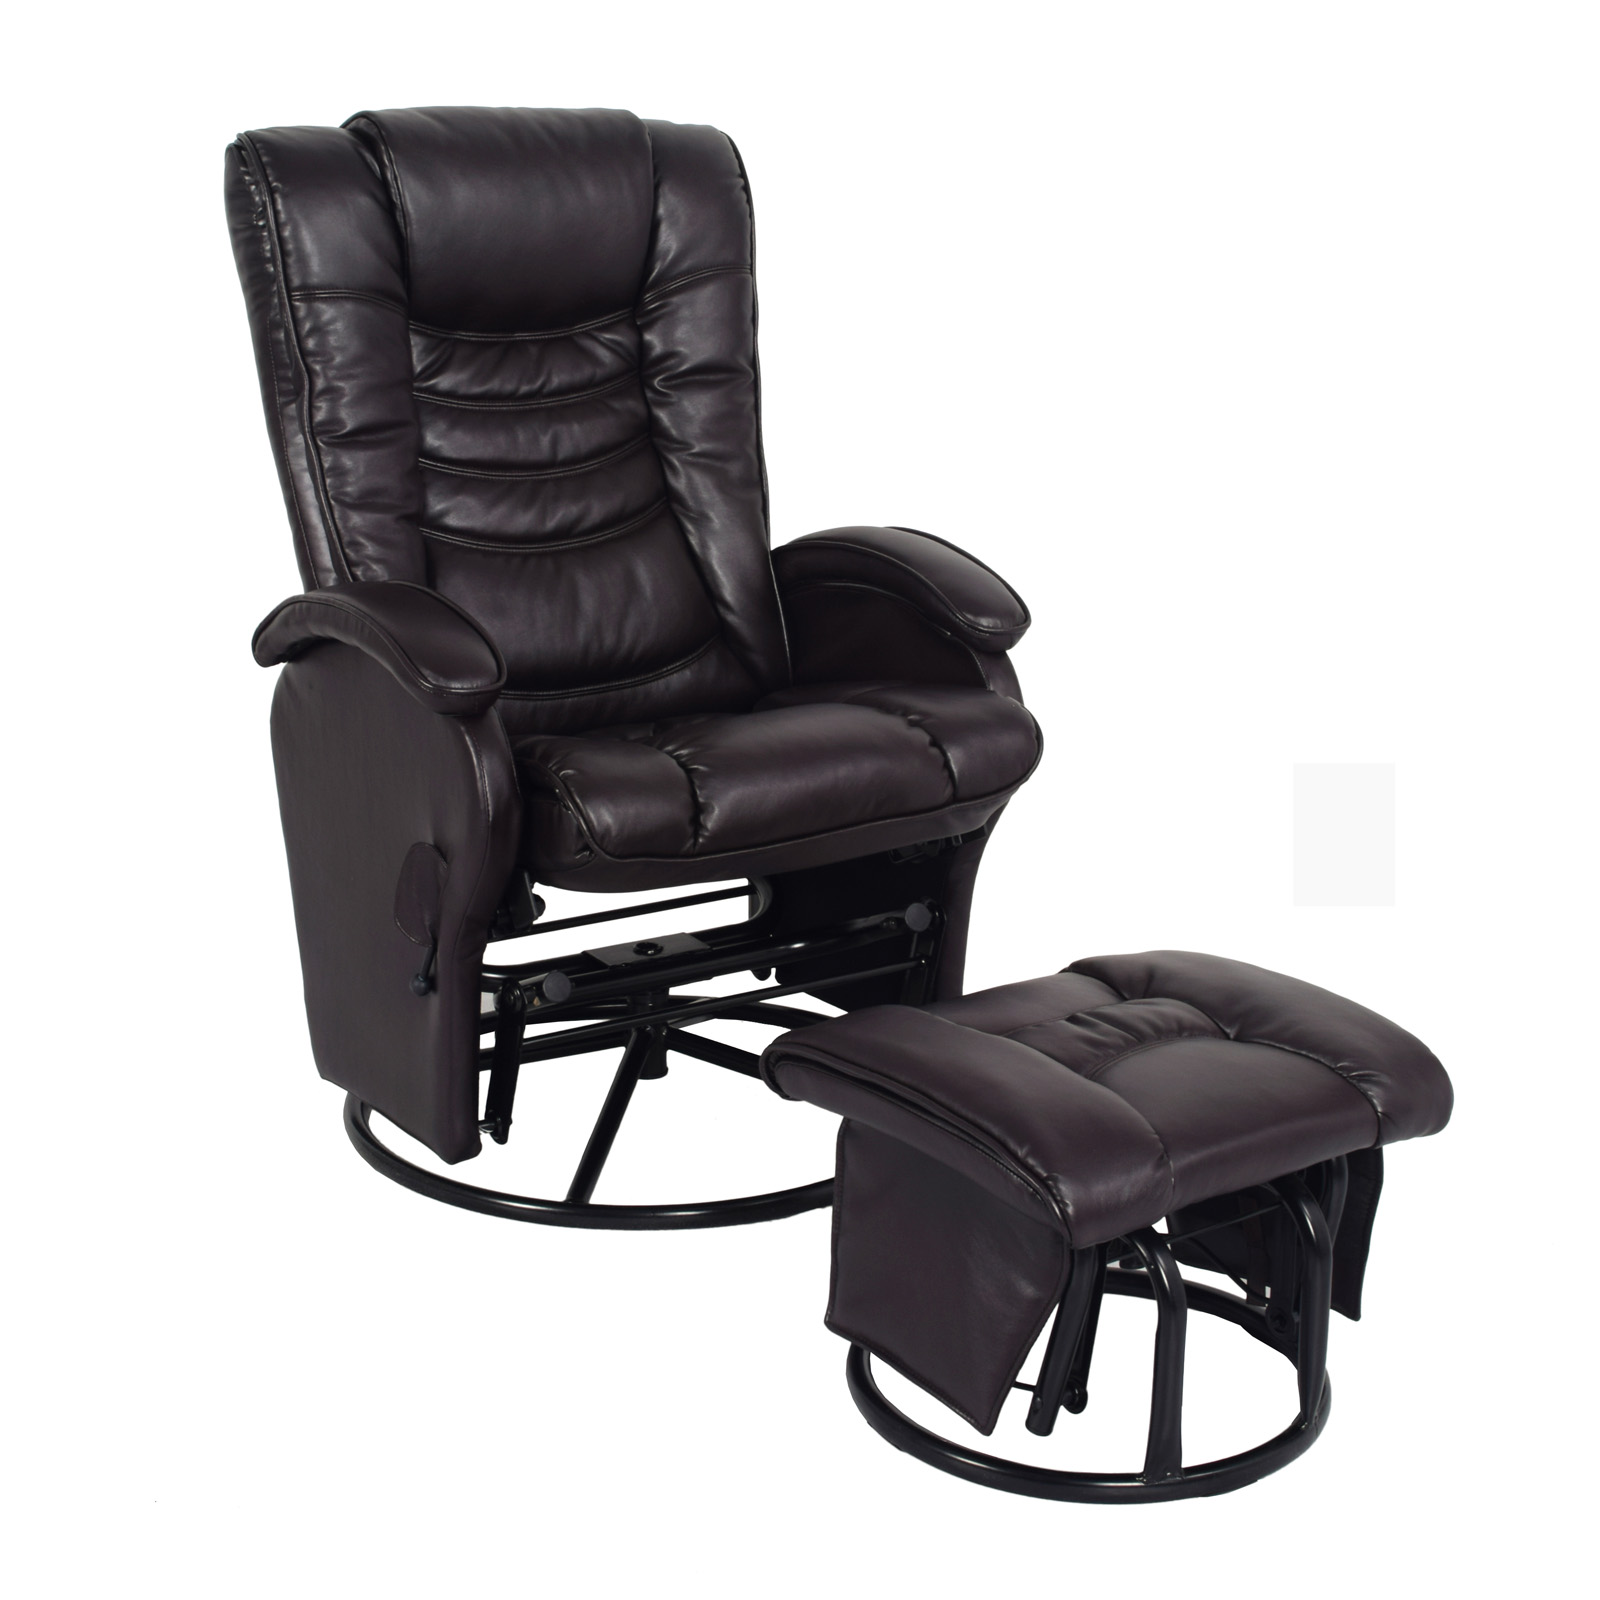 Leather Recliner Chair With Ottoman Essential Home Glider Recliner Chair Ottoman